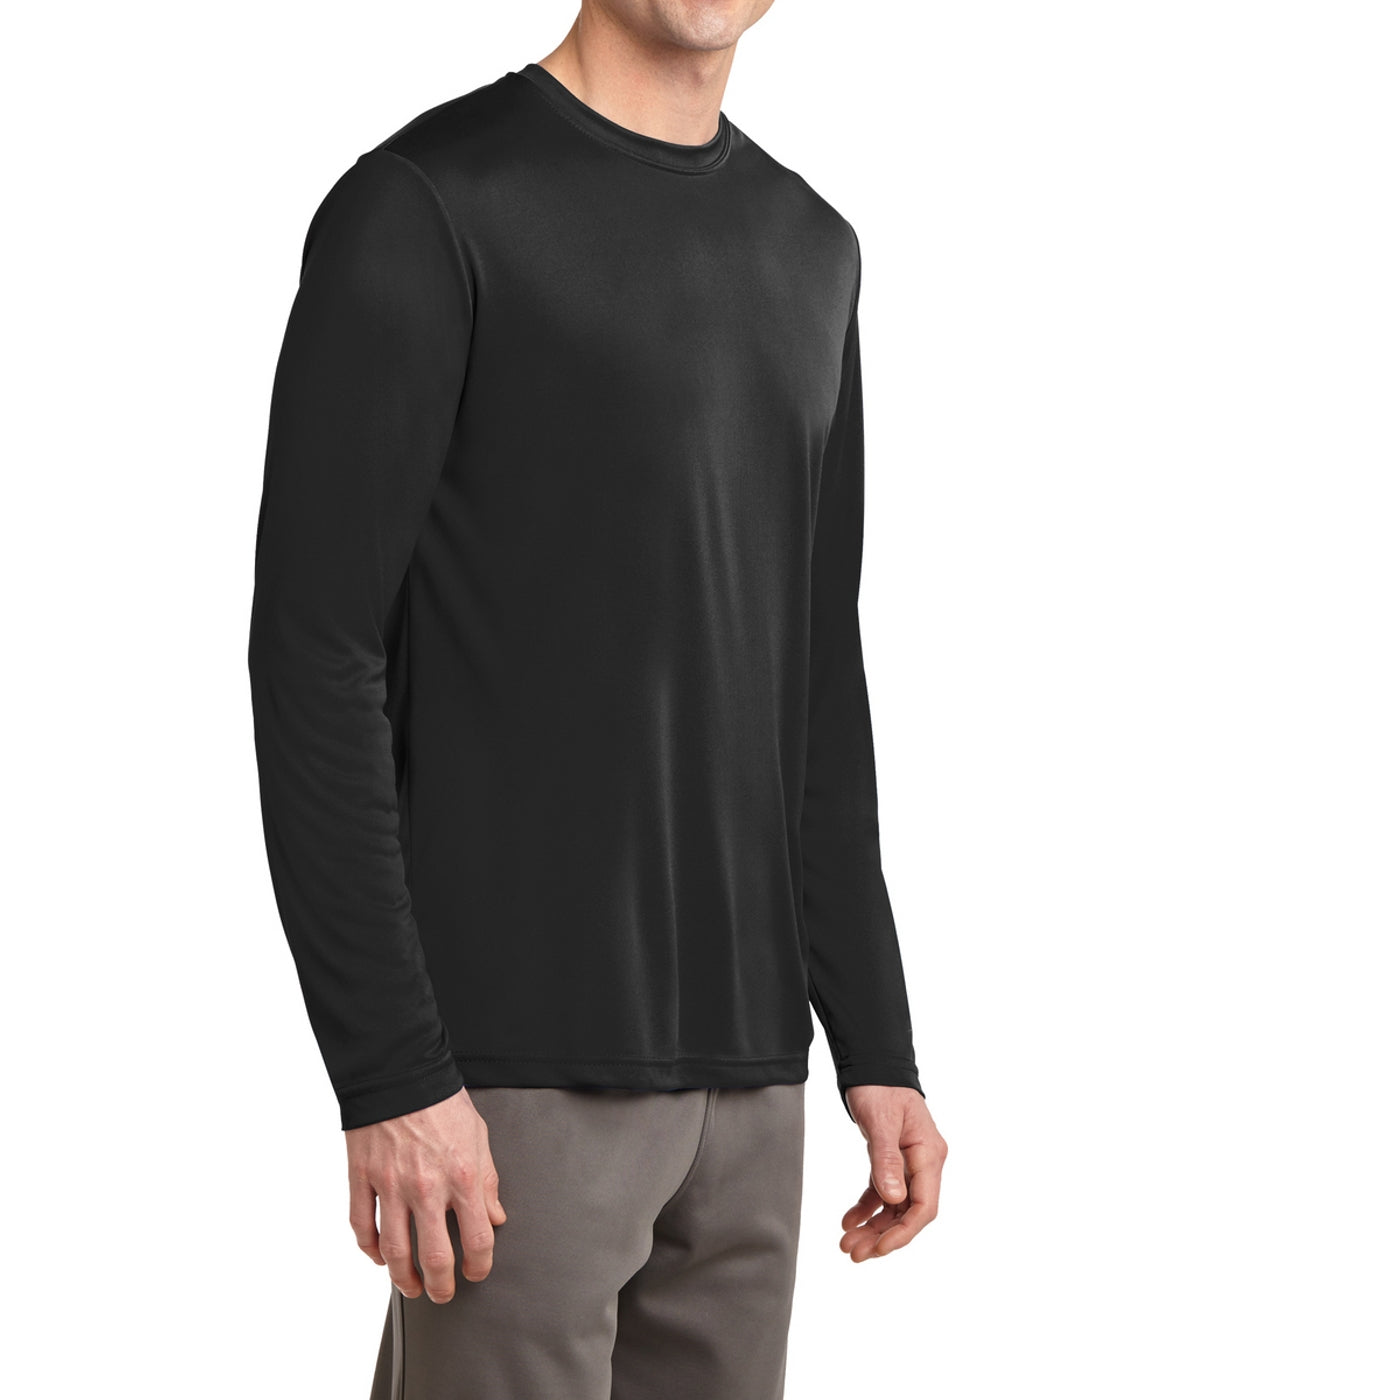 Men's Long Sleeve PosiCharge Competitor Tee - Black